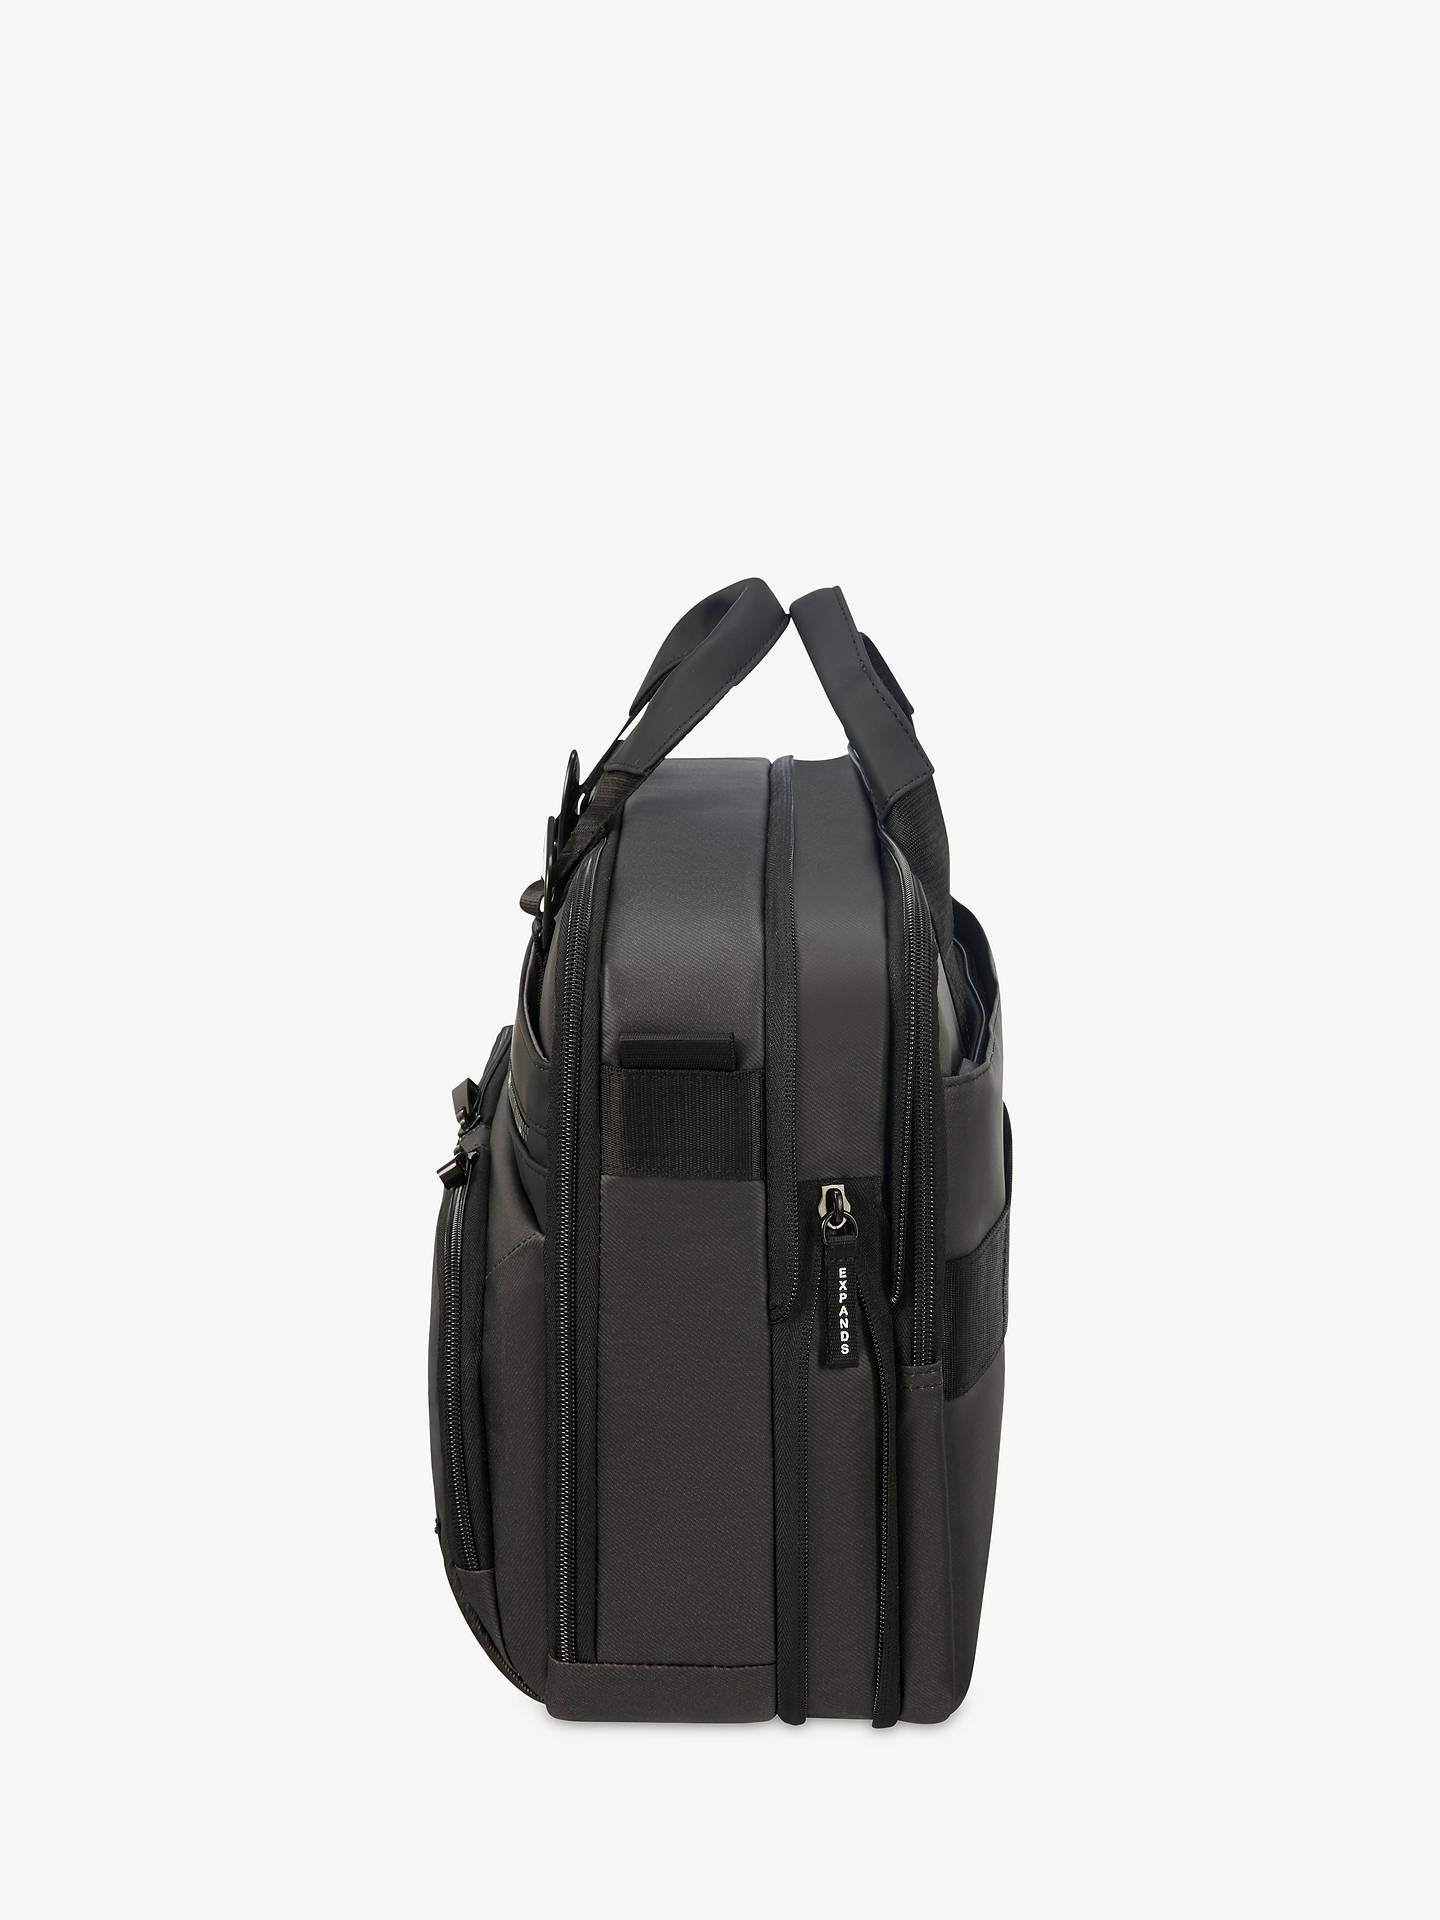 "BuySamsonite Cityvibe 2.0 15.6"" Laptop Bail Handle Briefcase, Jet Black Online at johnlewis.com"